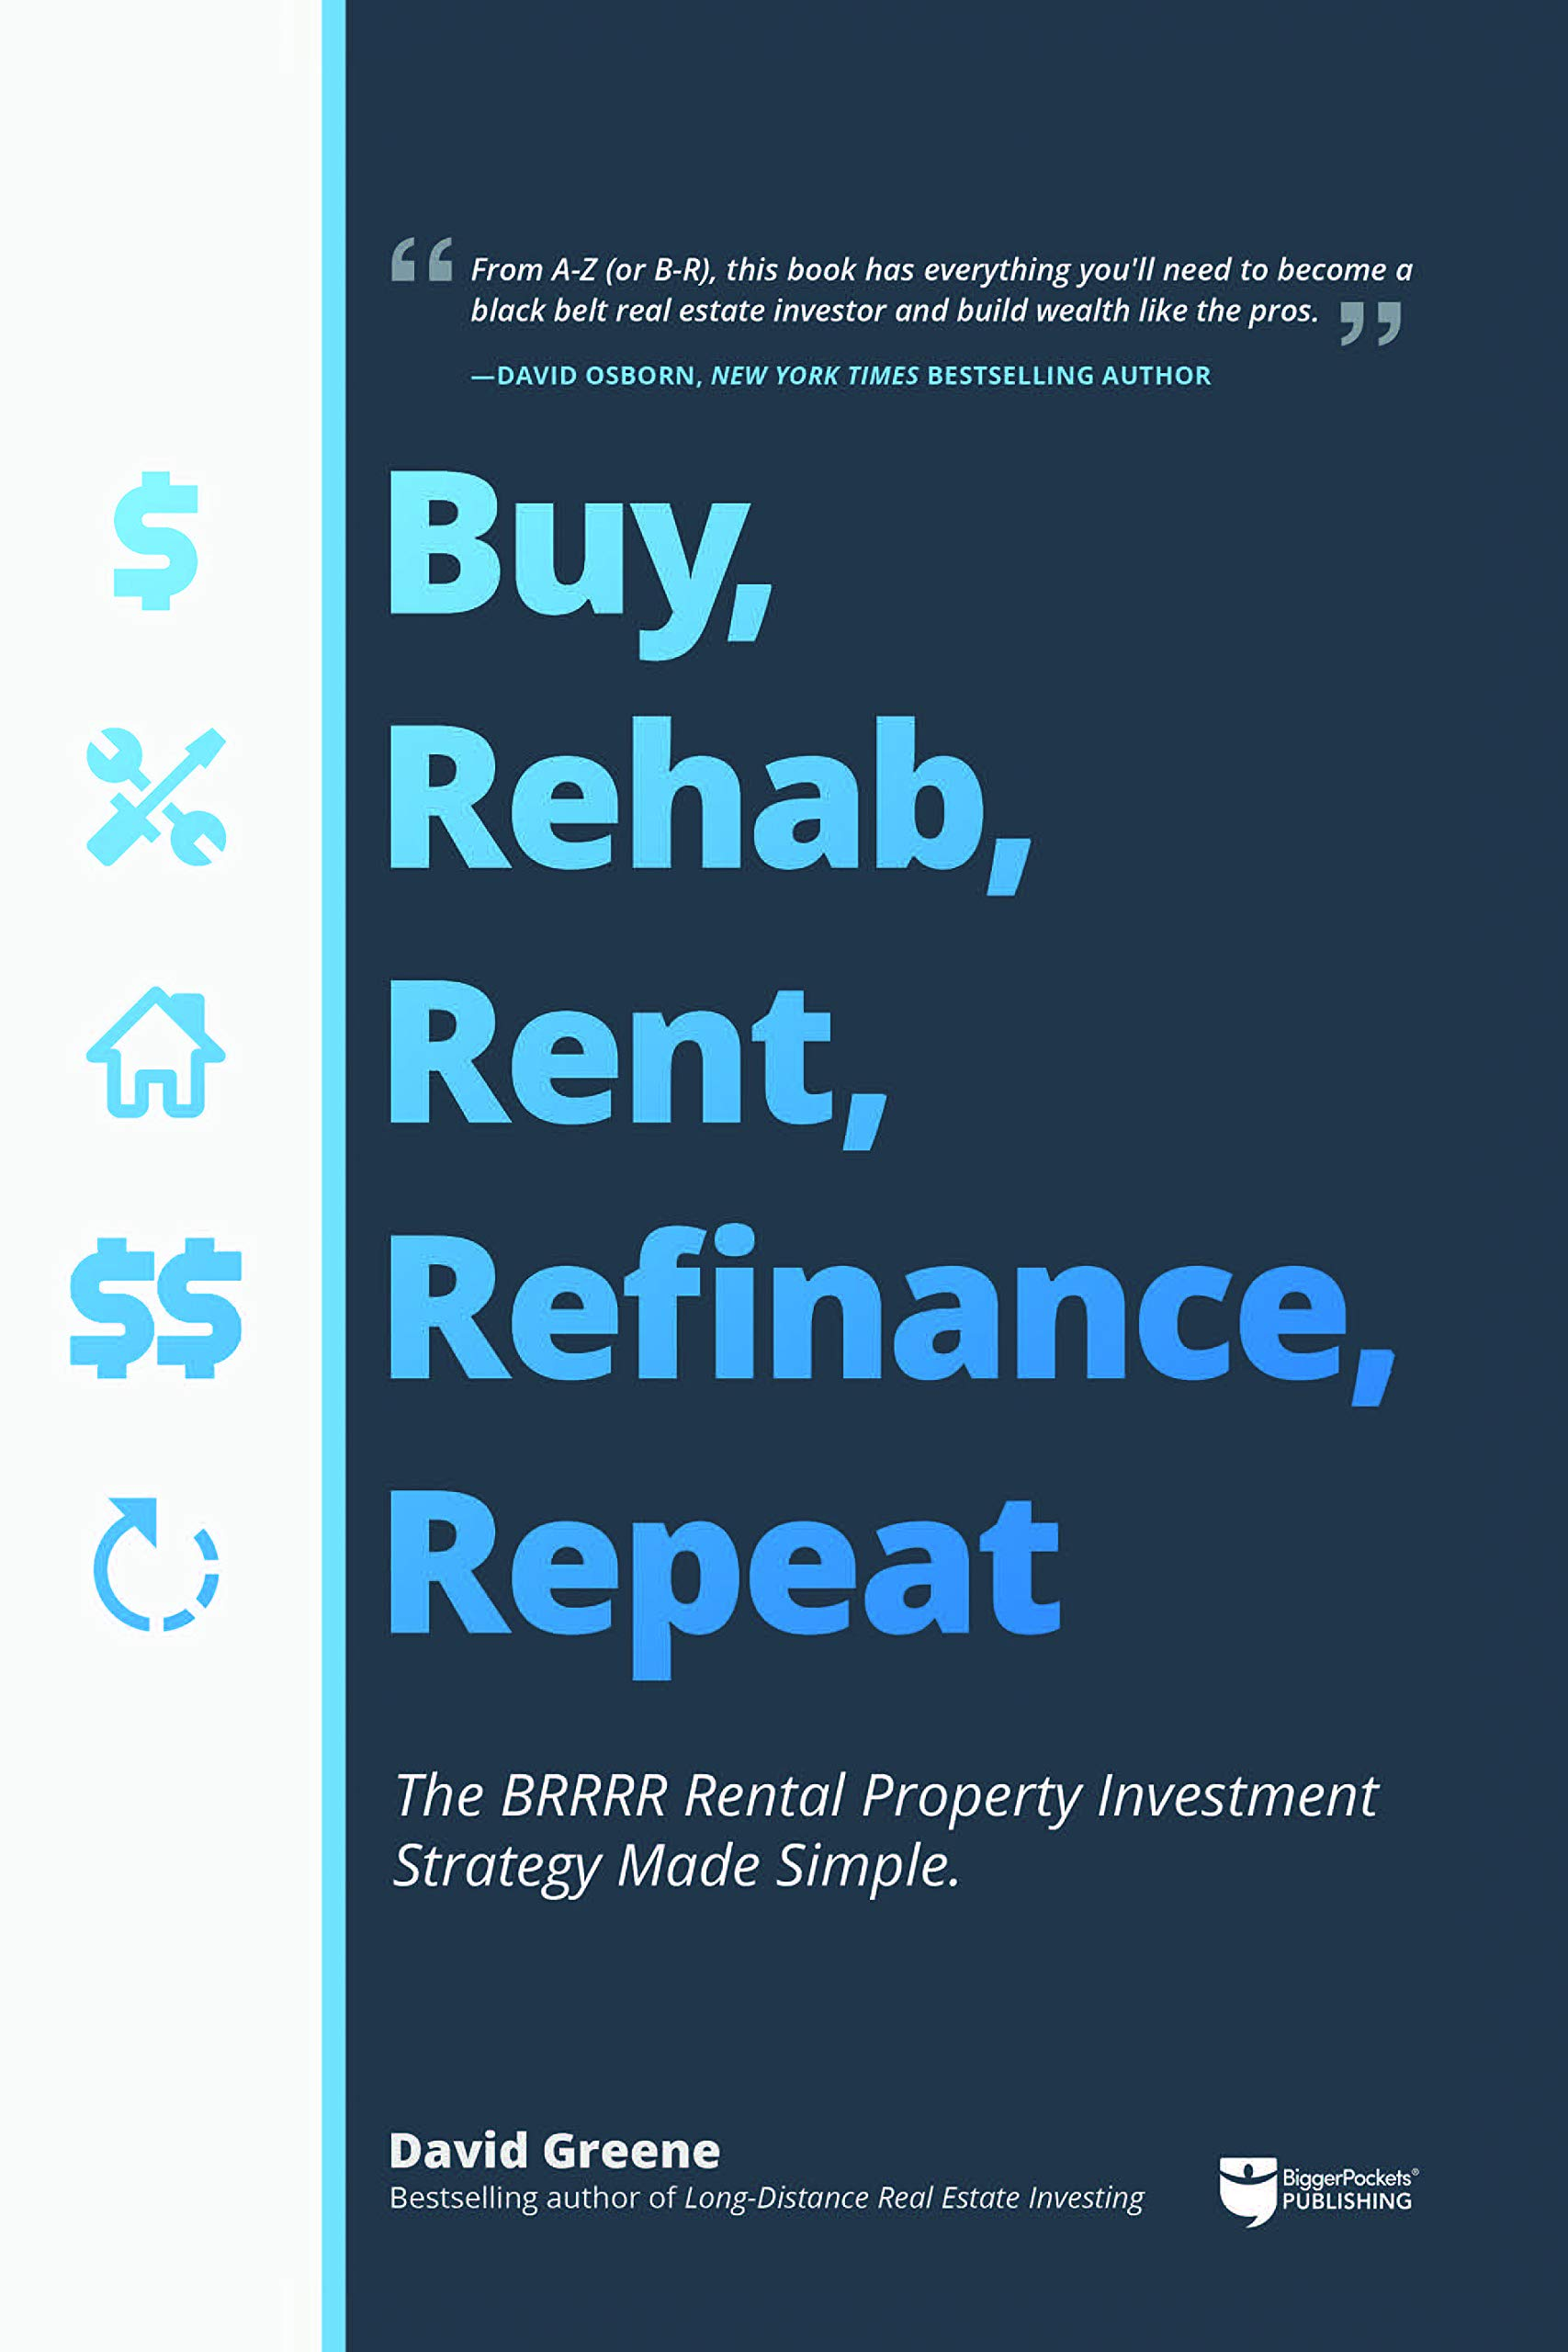 Buy, Rehab, Rent, Refinance, Repeat: The BRRRR Rental Property Investment Strategy Made Simple by BiggerPockets